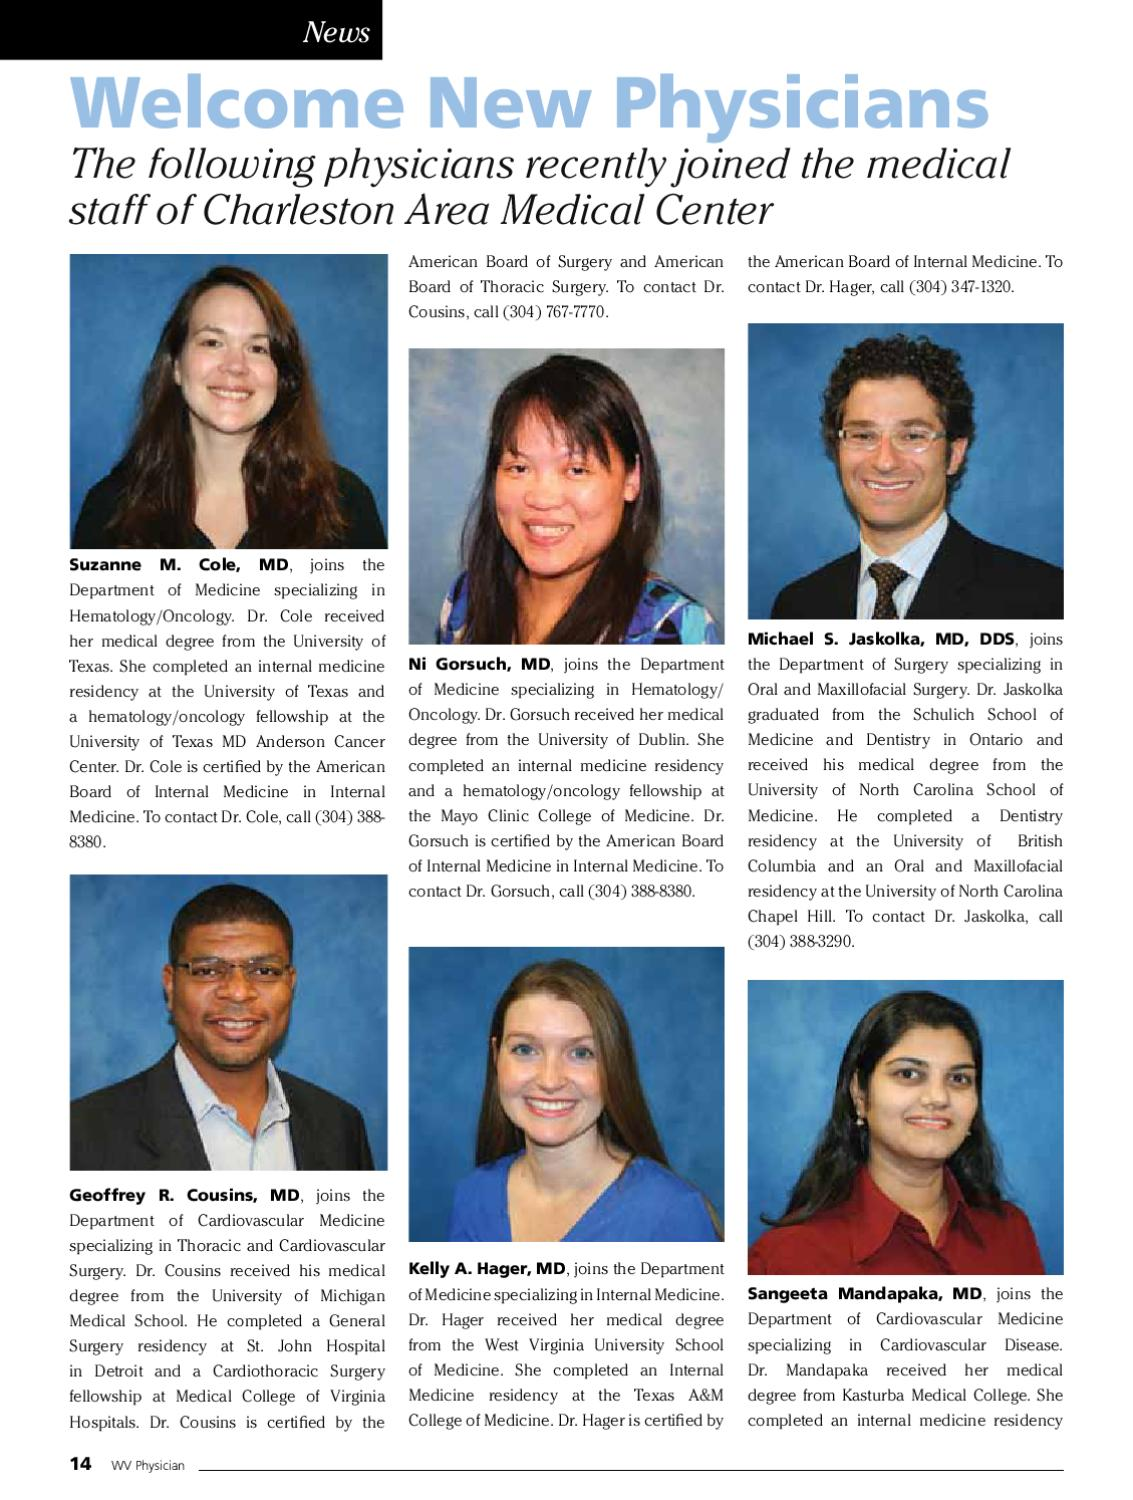 WV Physician Magazine Volume 1, Issue 4 by P  J  Hutton - issuu